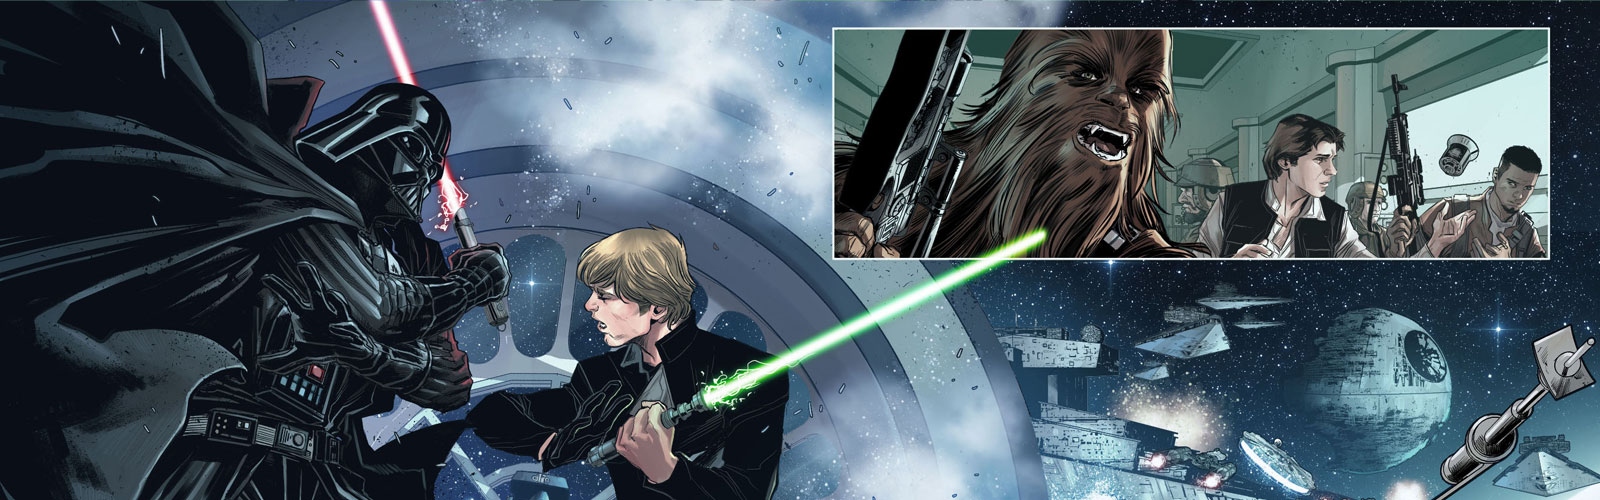 New Releases 09-09-15: Star Wars - Shattered Empire